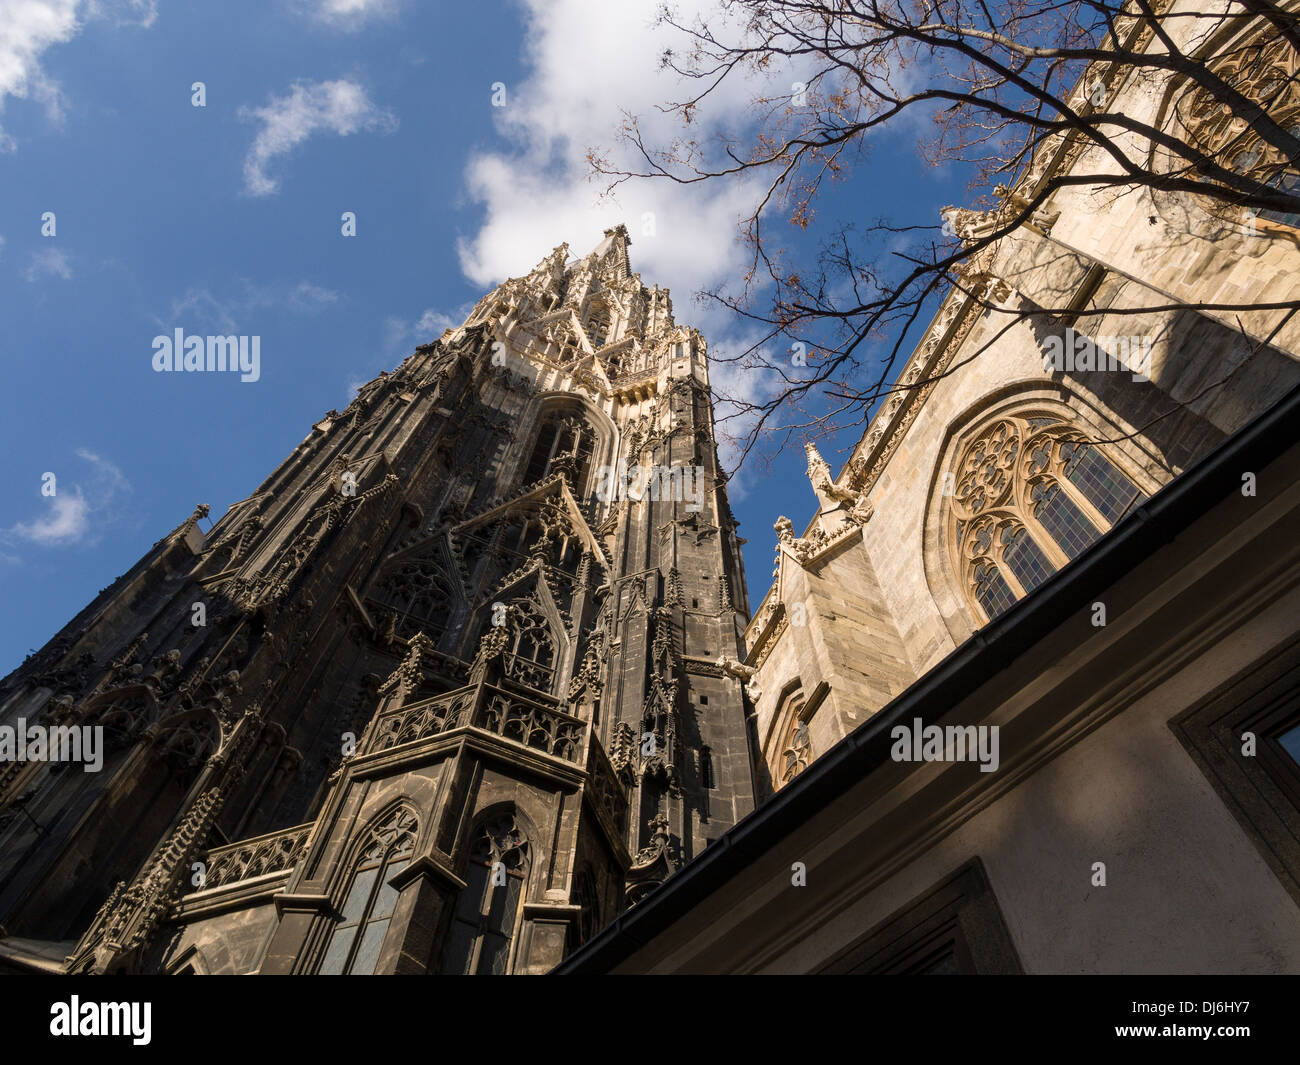 Still Lots to Clean: Steffi from below. The soot covered lower stones of the main tower of the Cathedral shows future work - Stock Image